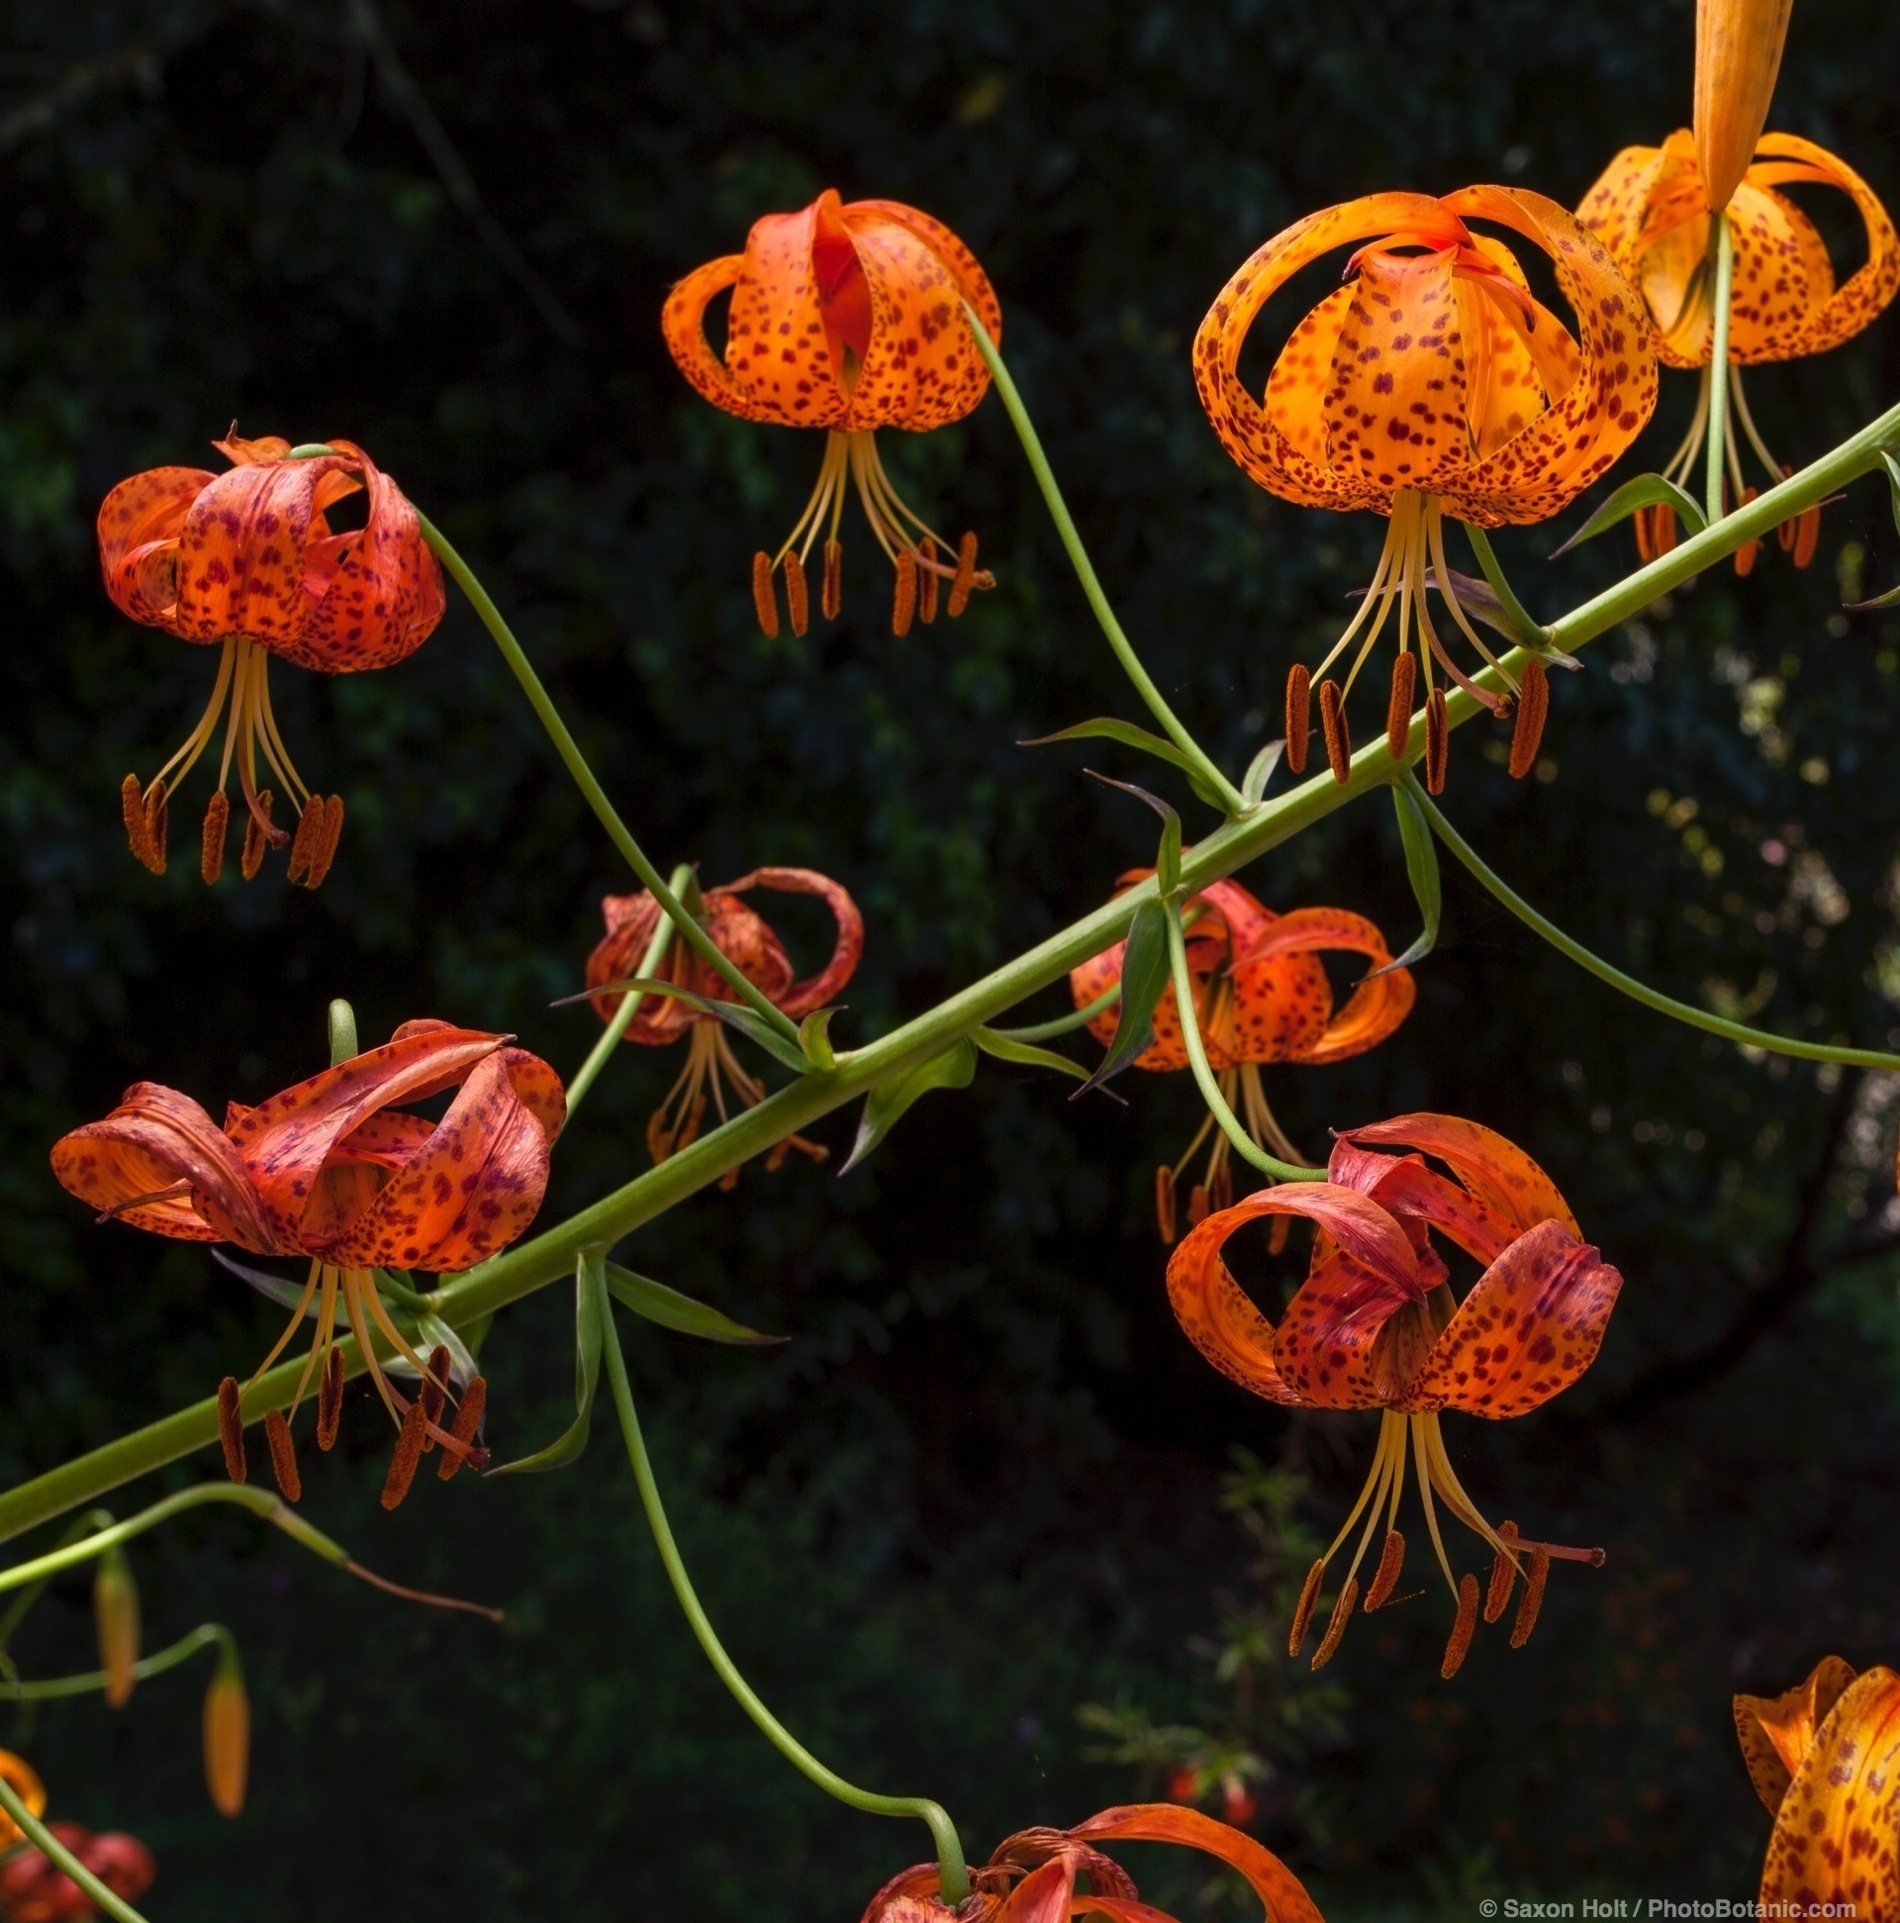 Lilium humboldtii ssp. ocellatum, Humboldt lily, orange flowering California native bulb